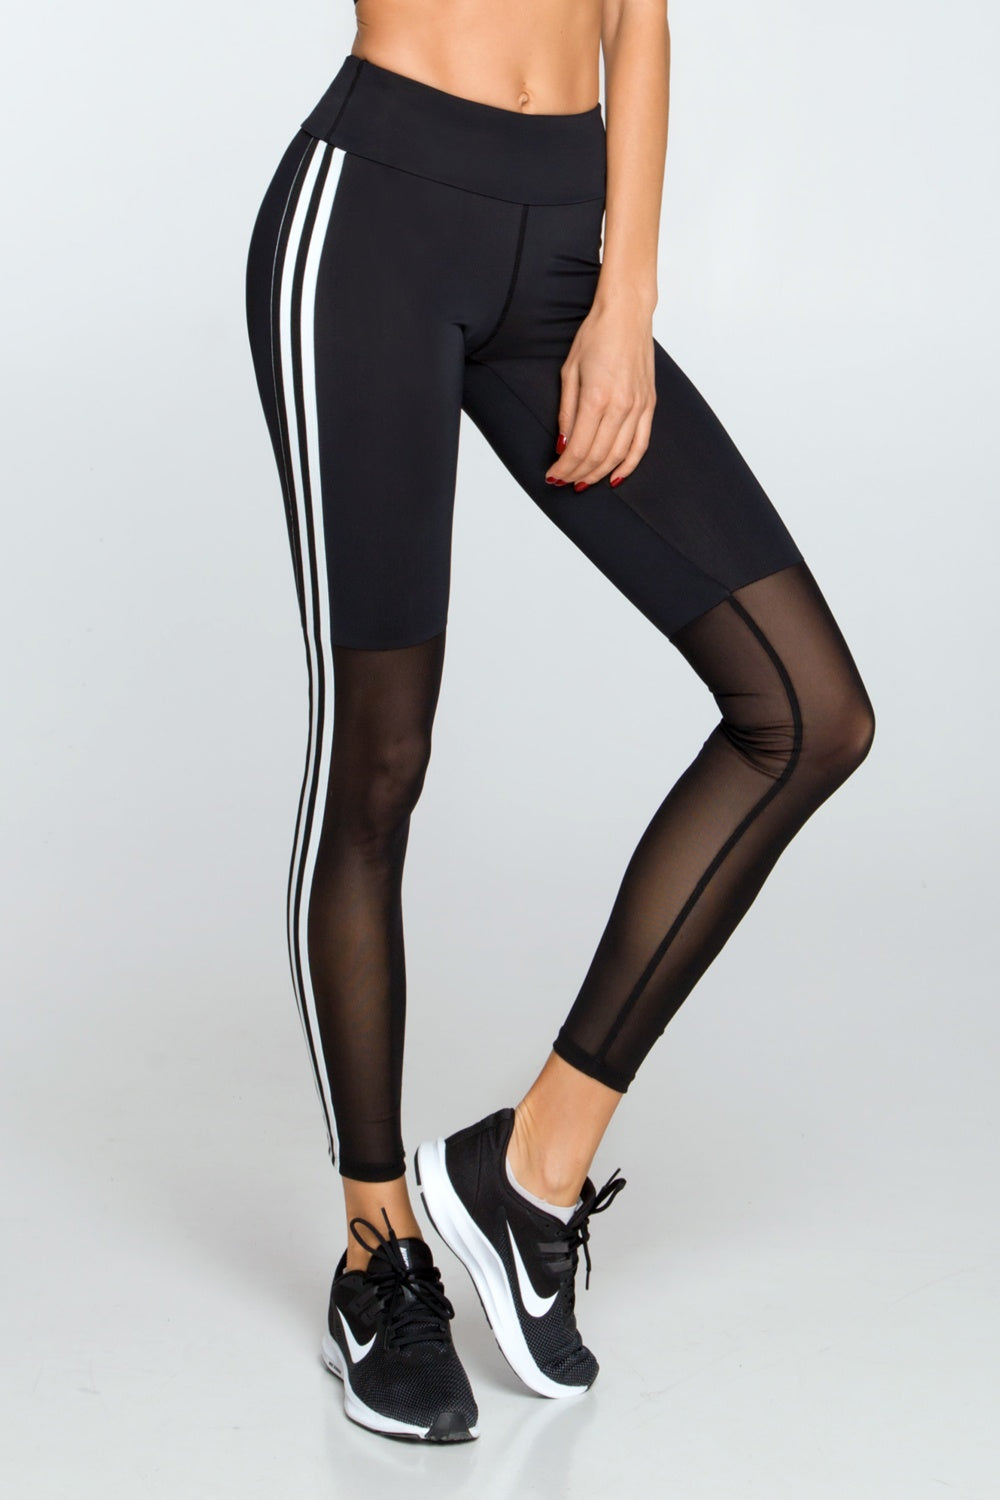 4 STRIPES Leggings - Designed for Fitness